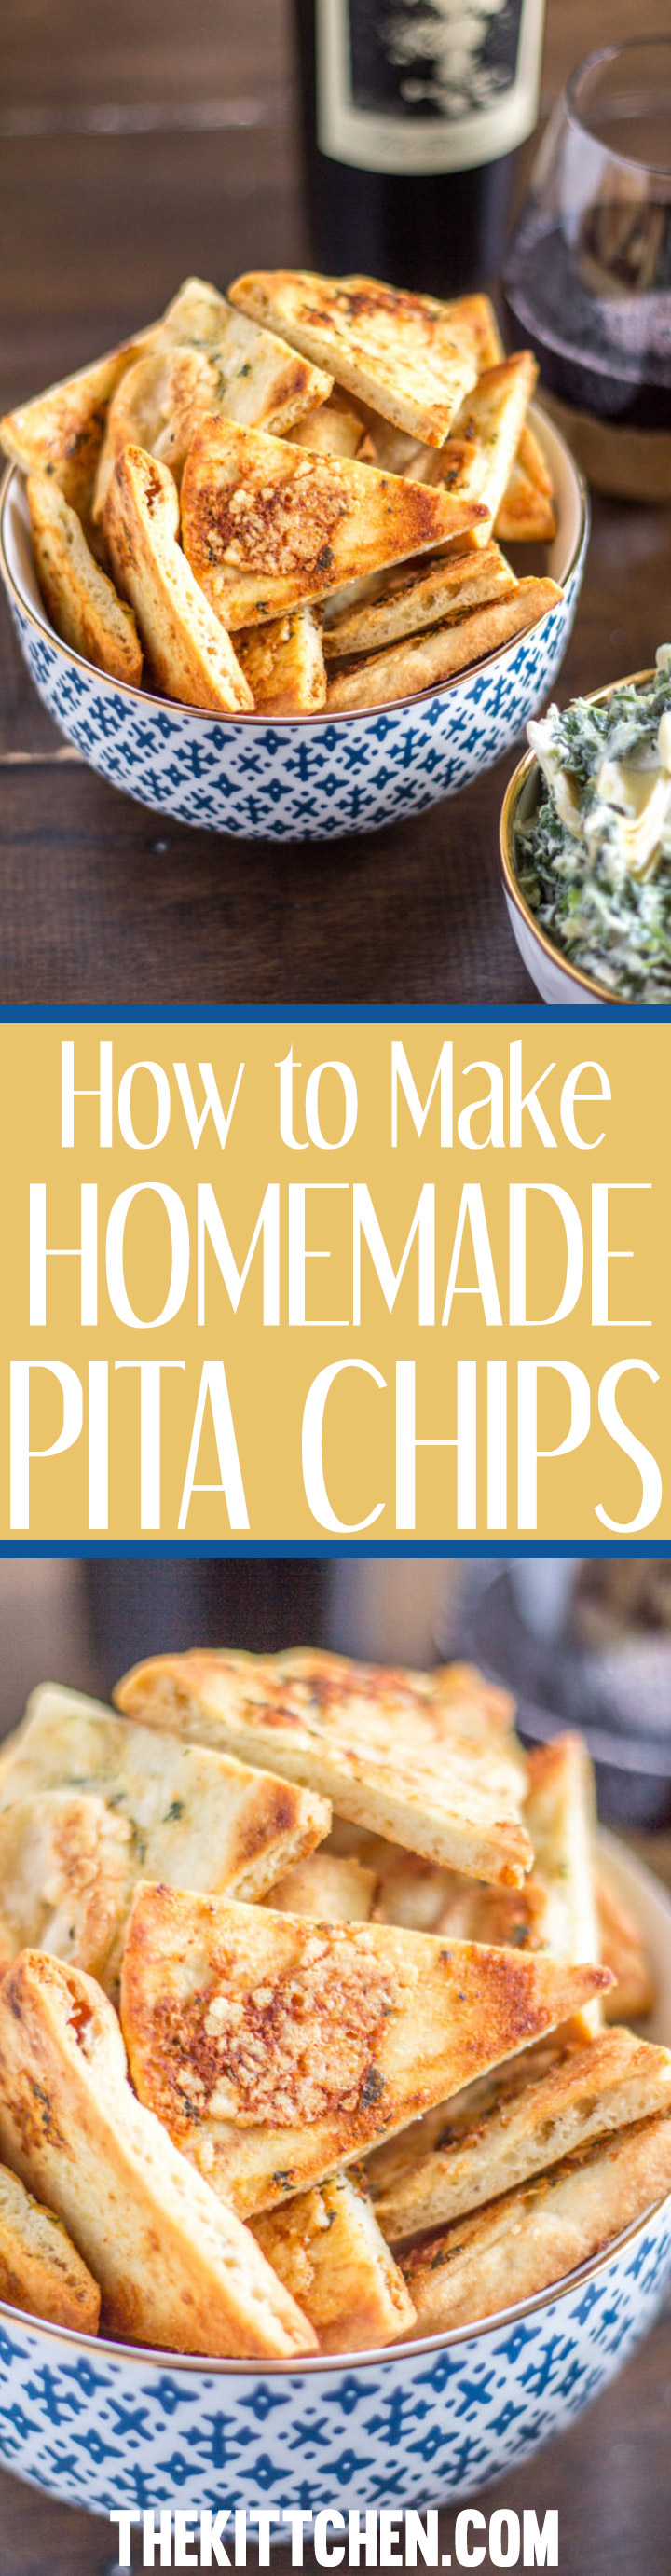 Homemade pita chips are easy to make in just a few minutes of active preparation time. I love to make parmesan garlic pita chips to serve with spinach artichoke dip, but they are delicious on their own too.